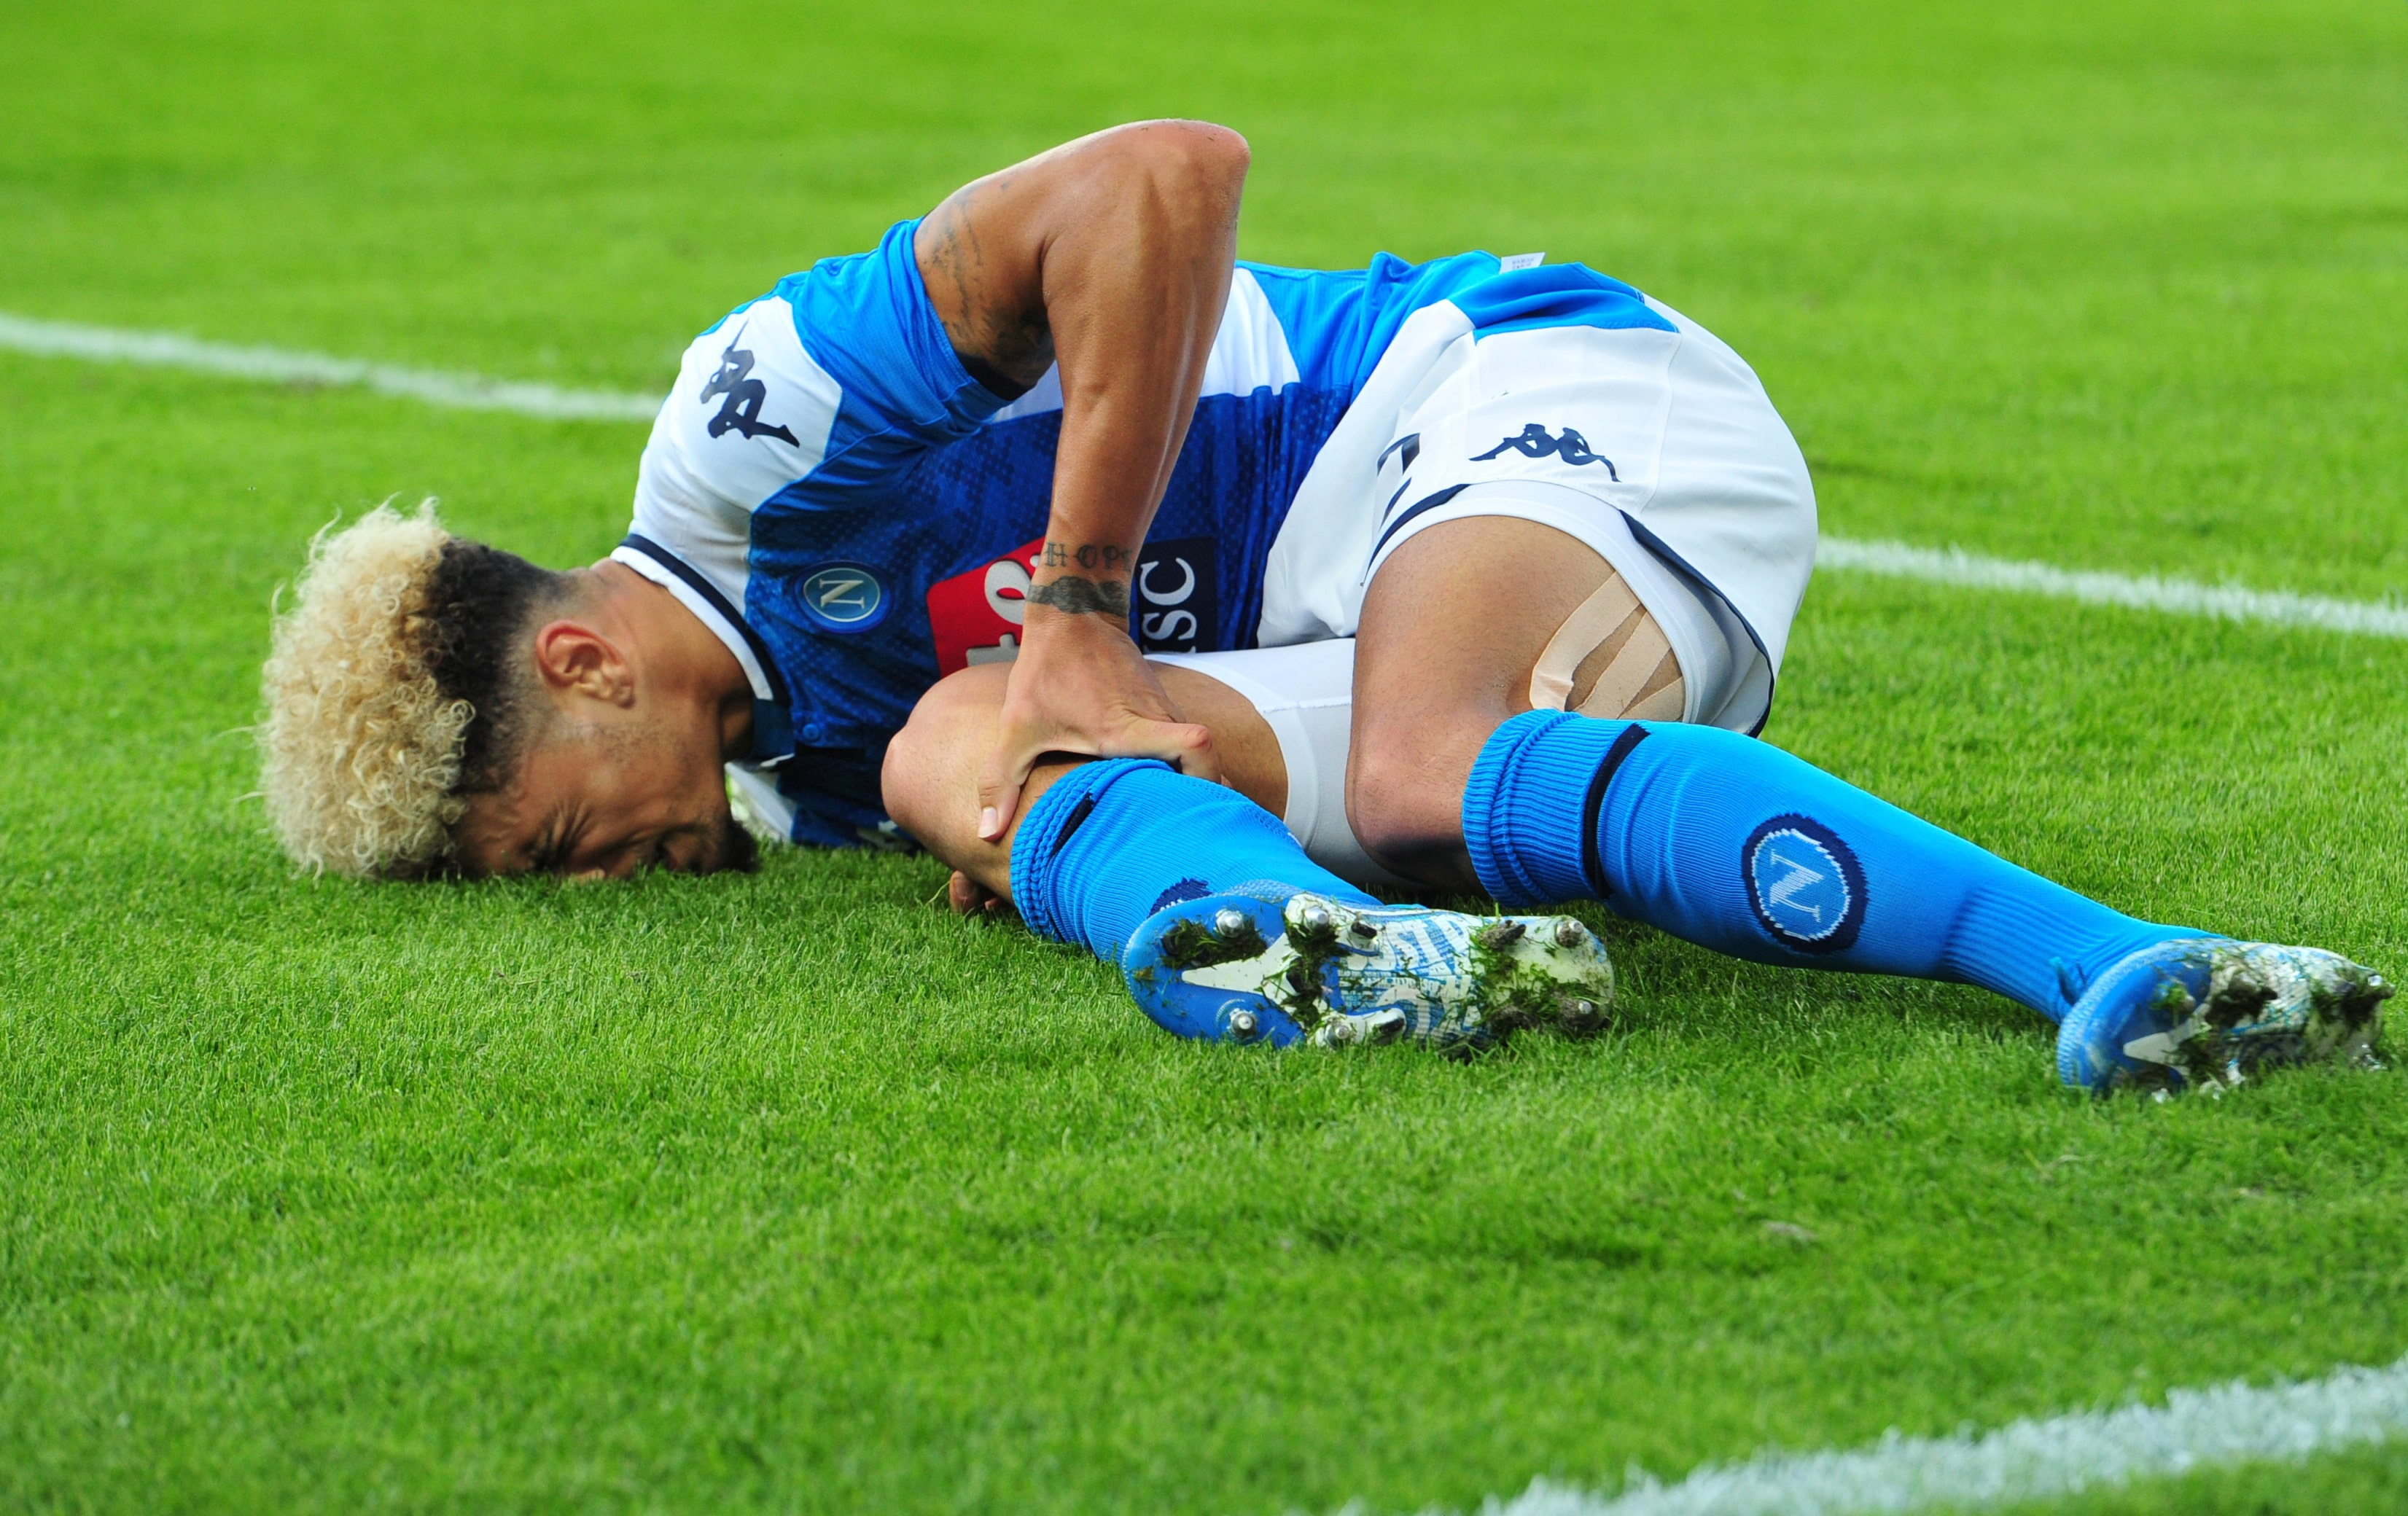 Season over for Napoli defender Kevin Malcuit after ACL tear